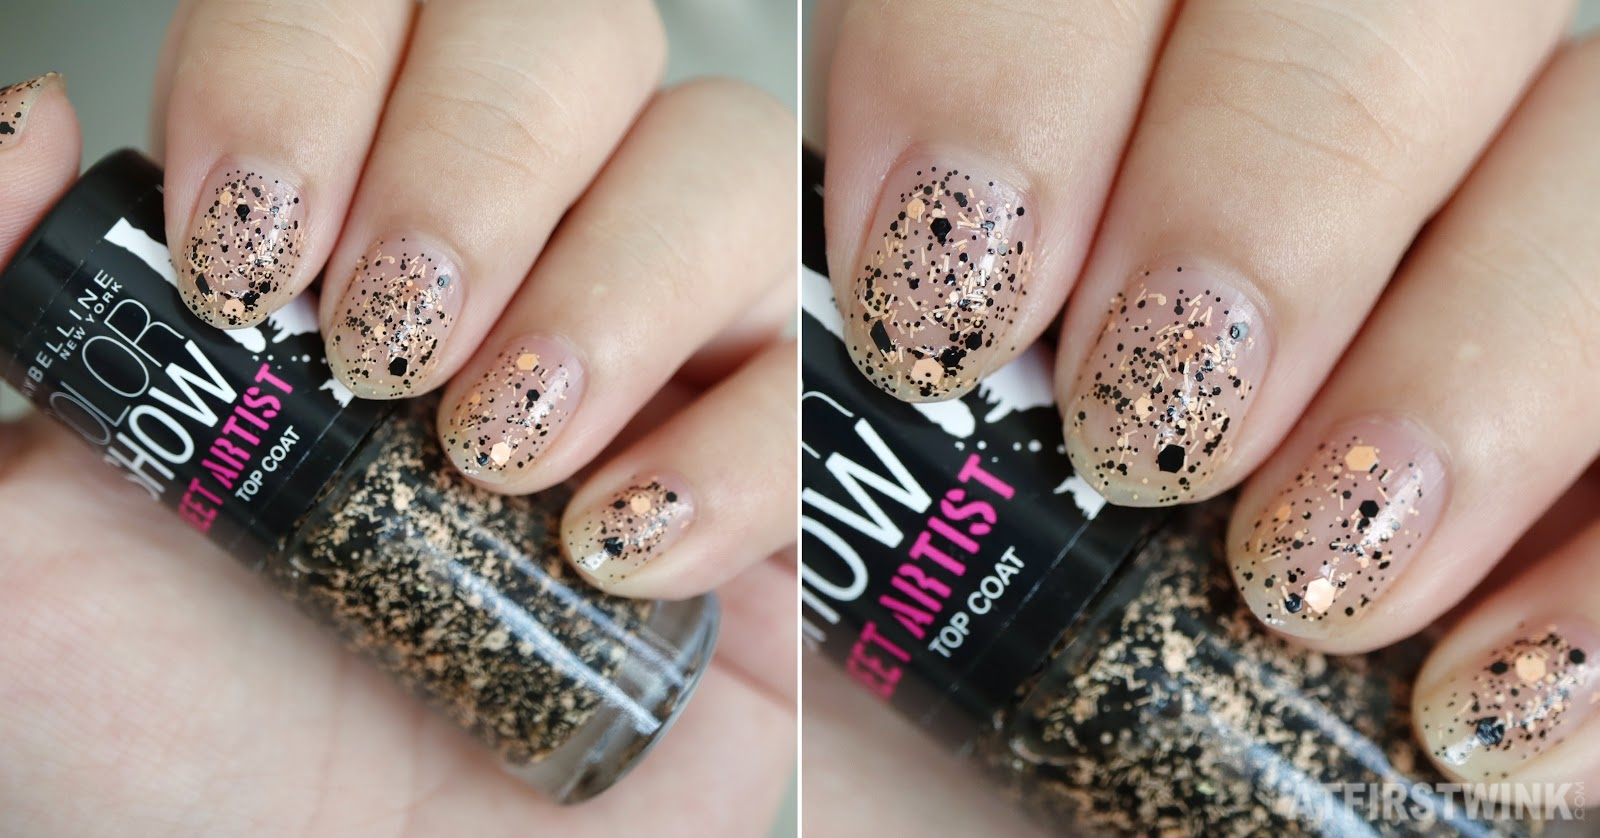 Maybelline Color show street artist top coat 03 - urban vibe nail swatch